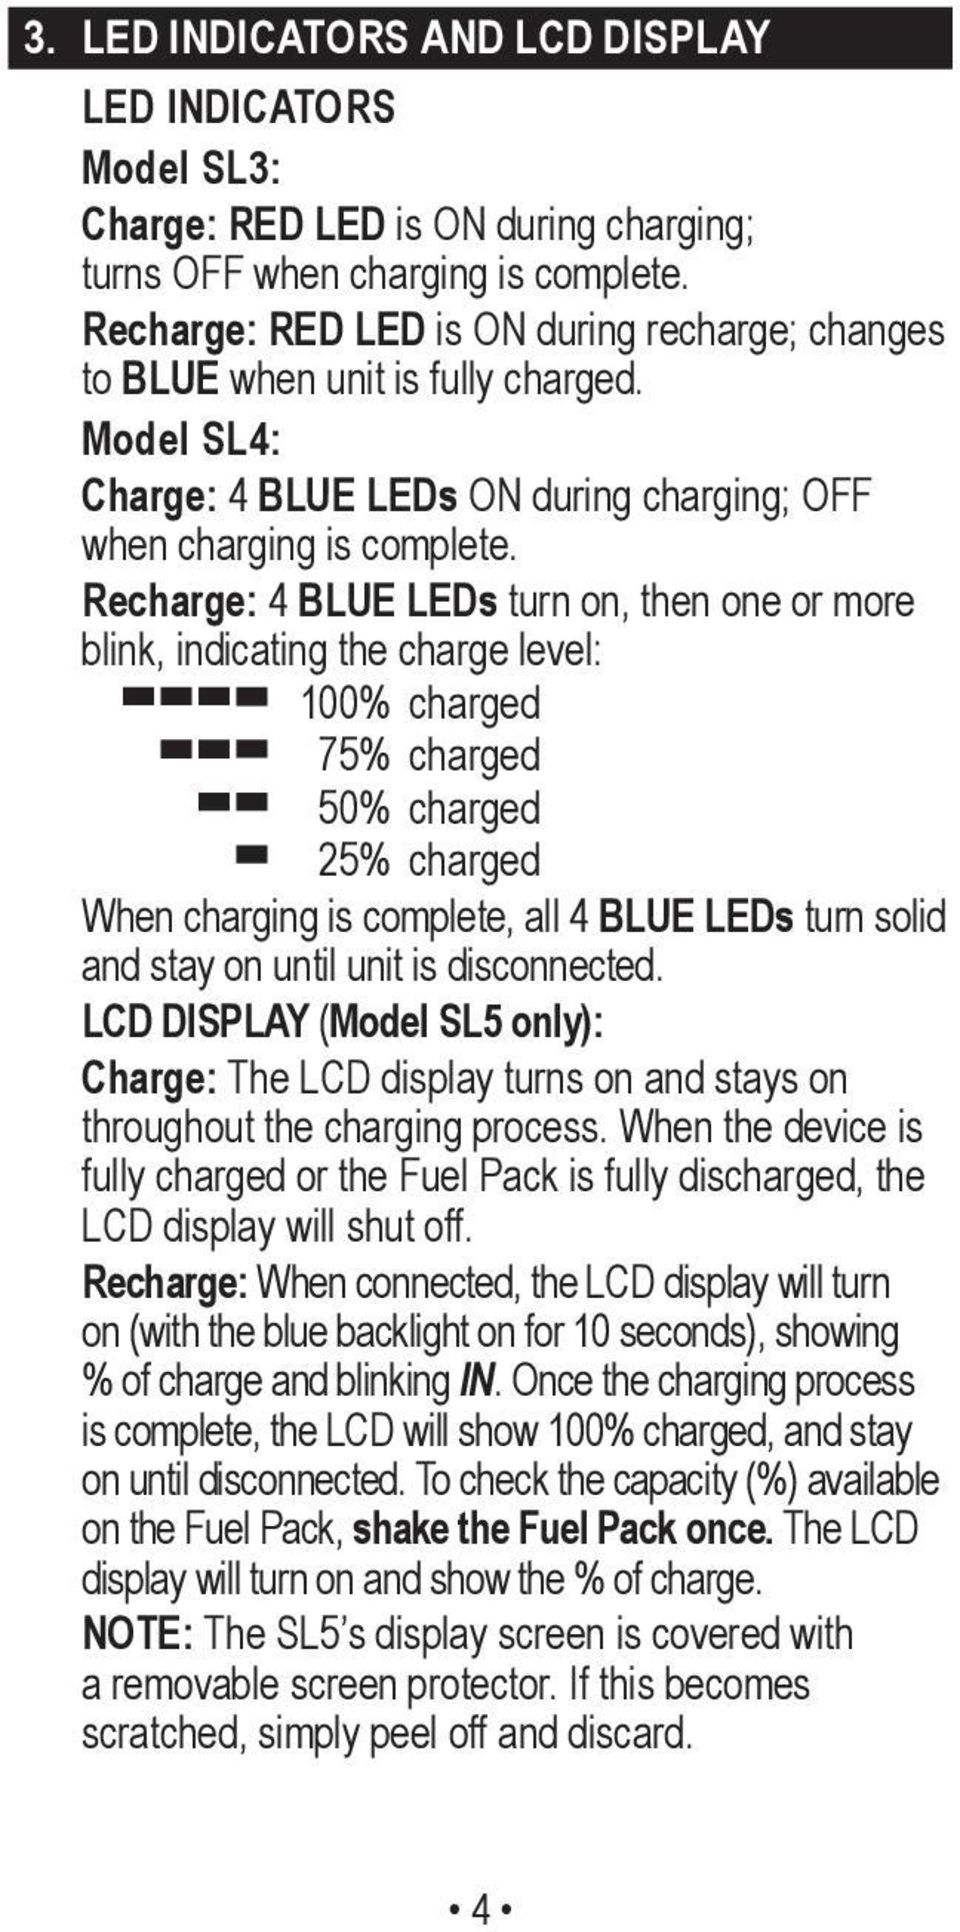 Recharge: 4 BLUE LEDs turn on, then one or more blink, indicating the charge level: 100% charged 75% charged 50% charged 25% charged When charging is complete, all 4 BLUE LEDs turn solid and stay on